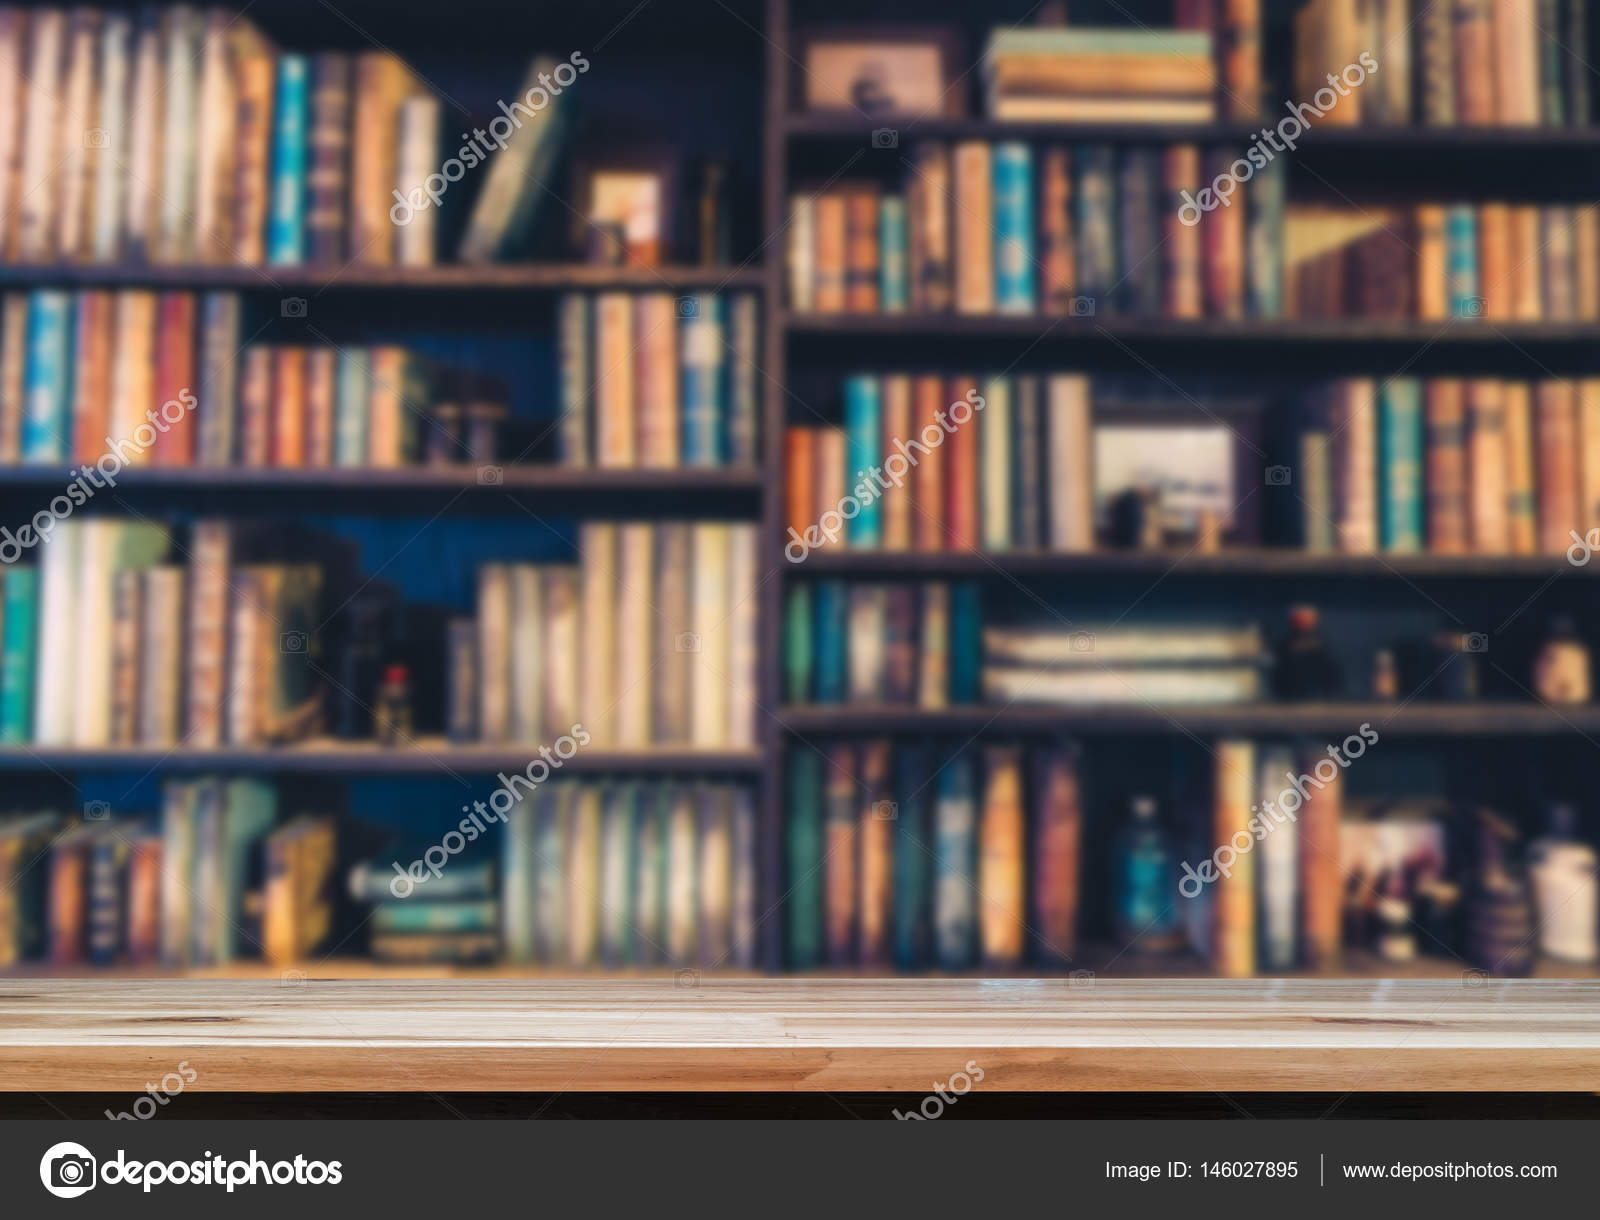 Blurred Image Many Old Books On Bookshelf In Library Photo By Escapejaja